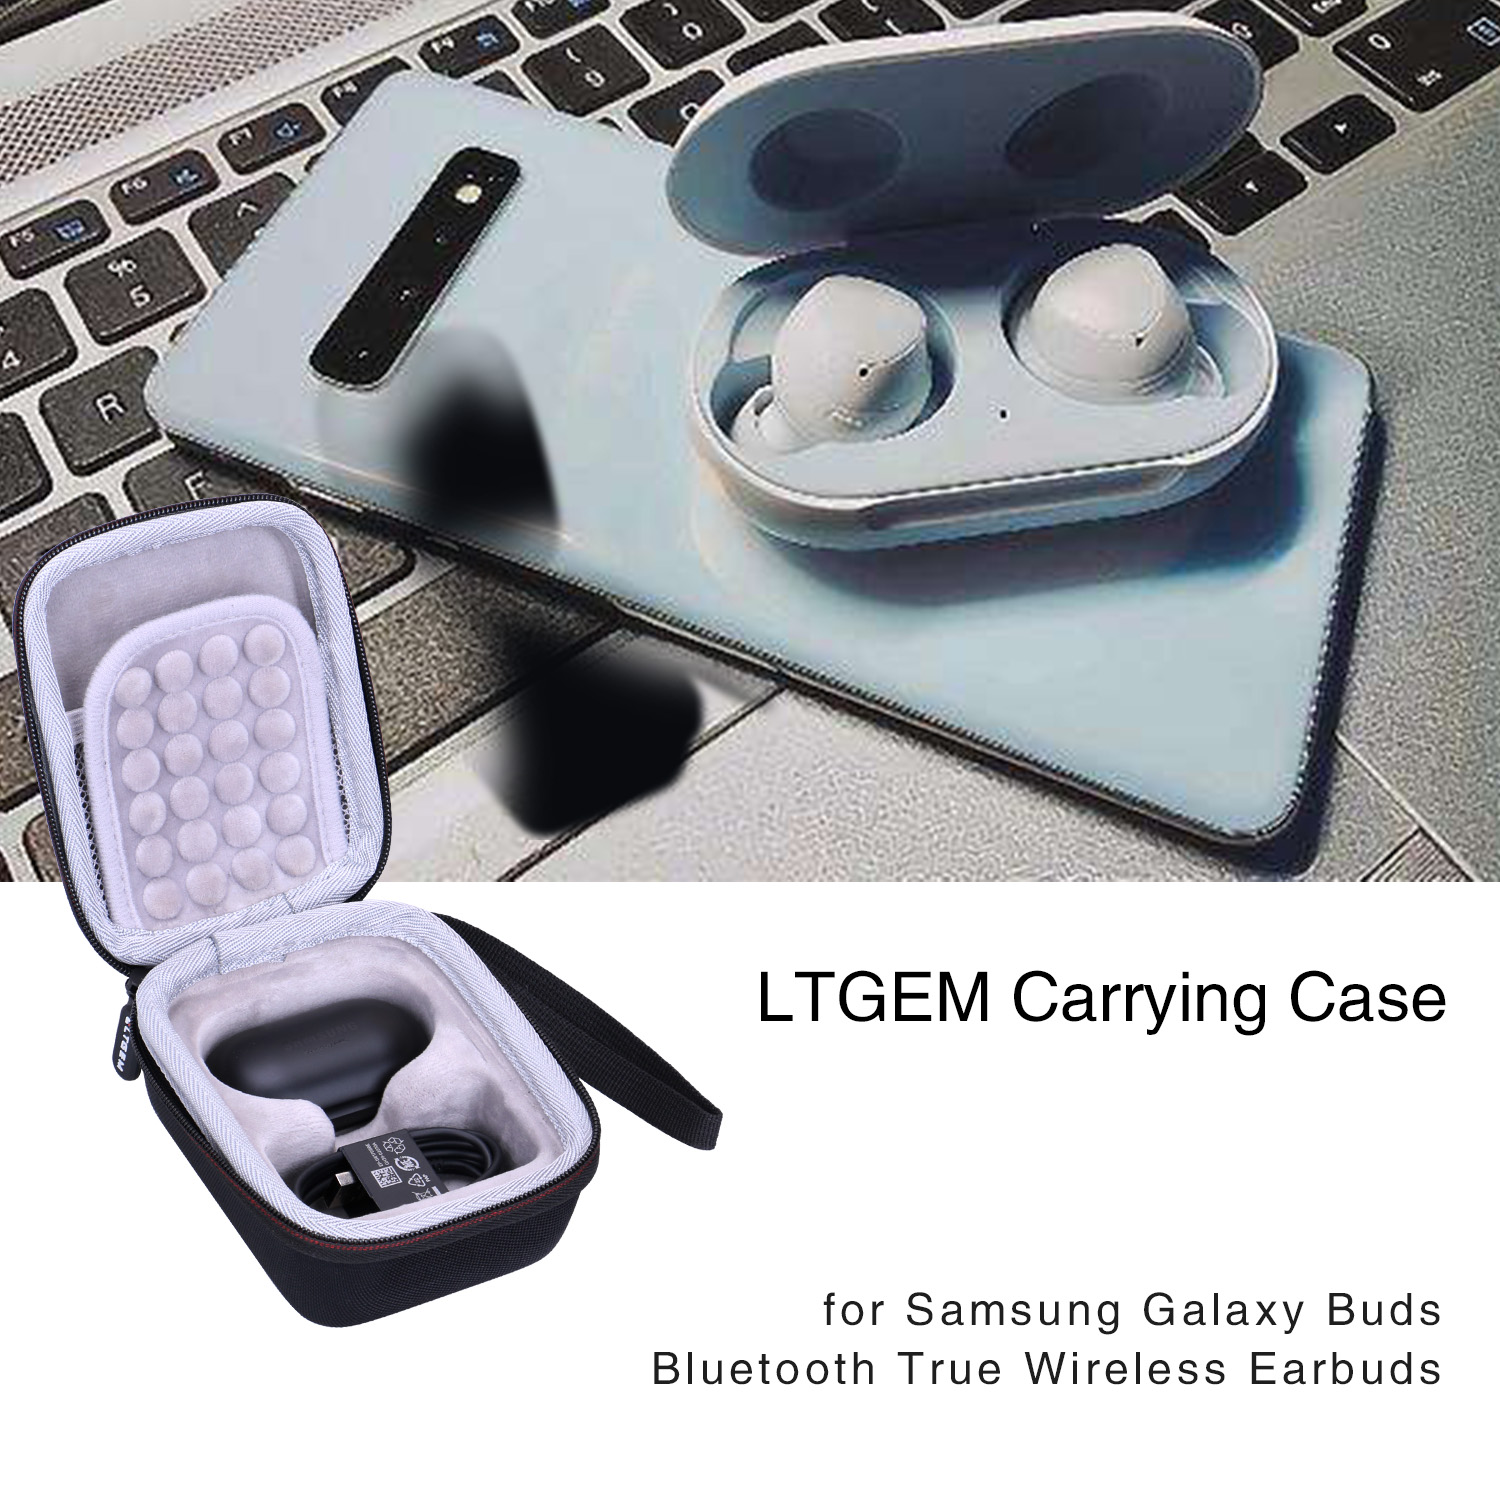 Ltgem Eva Black Carrying Hard Case For Samsung Galaxy Buds Bluetooth True Wireless Earbuds Earphone Accessories Aliexpress